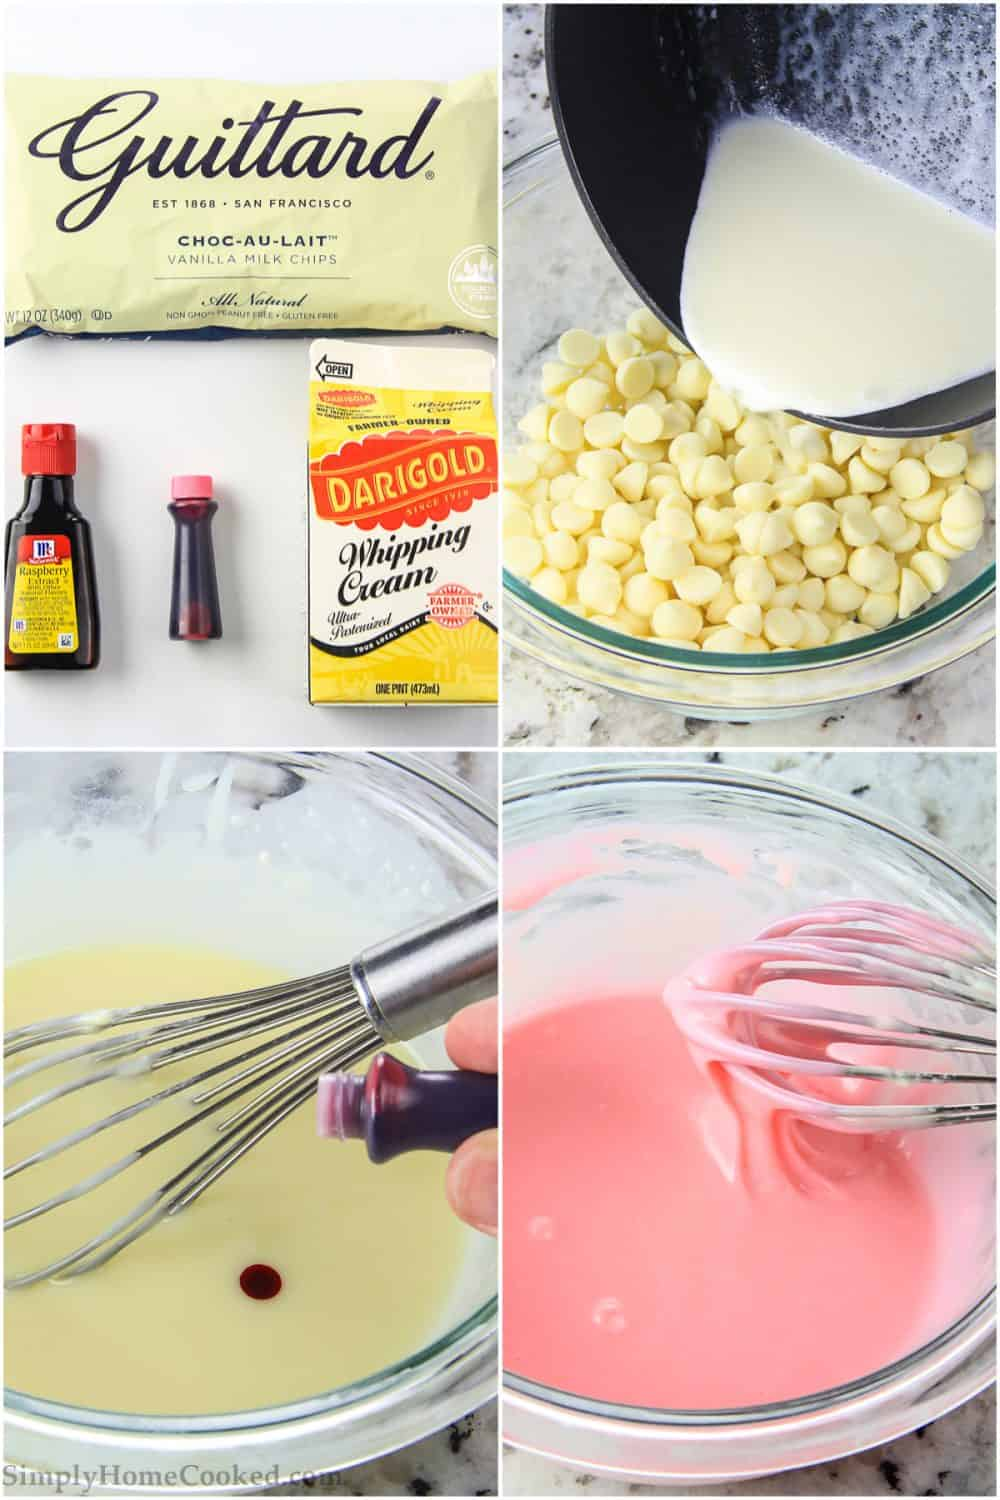 steps to make pink what chocolate raspberry ganache